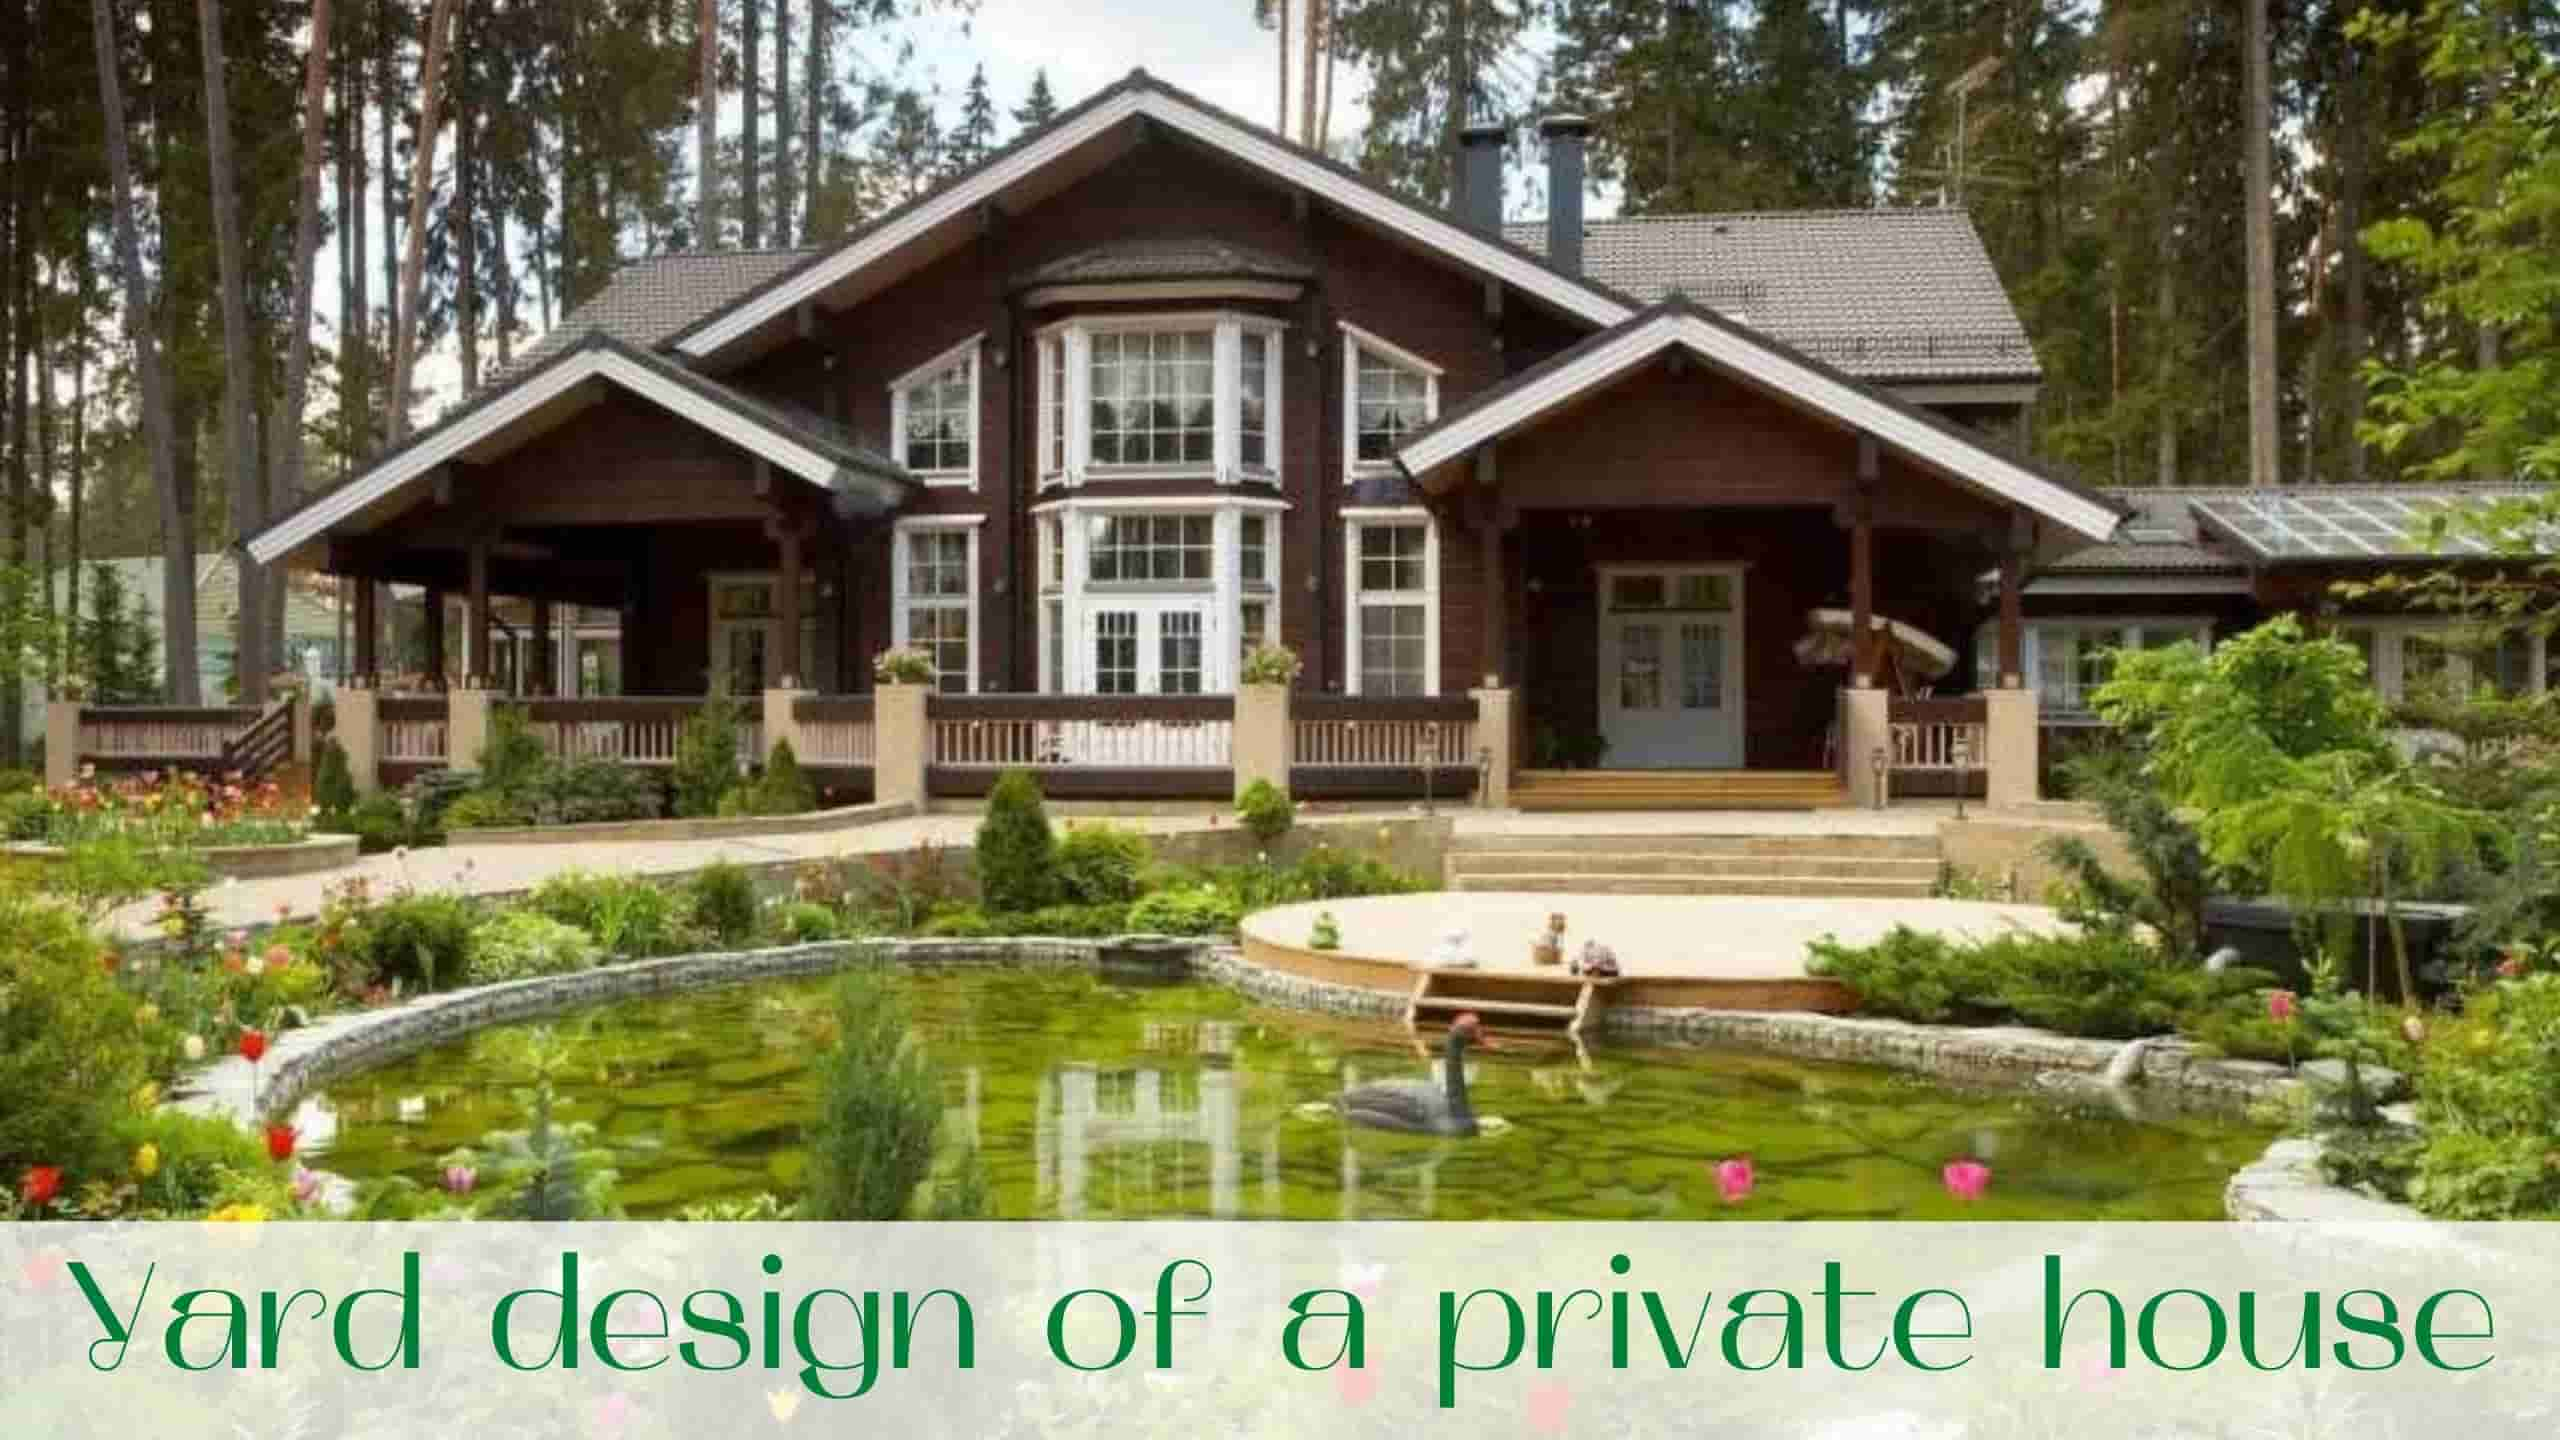 image-Yard-design-of-a-private-house